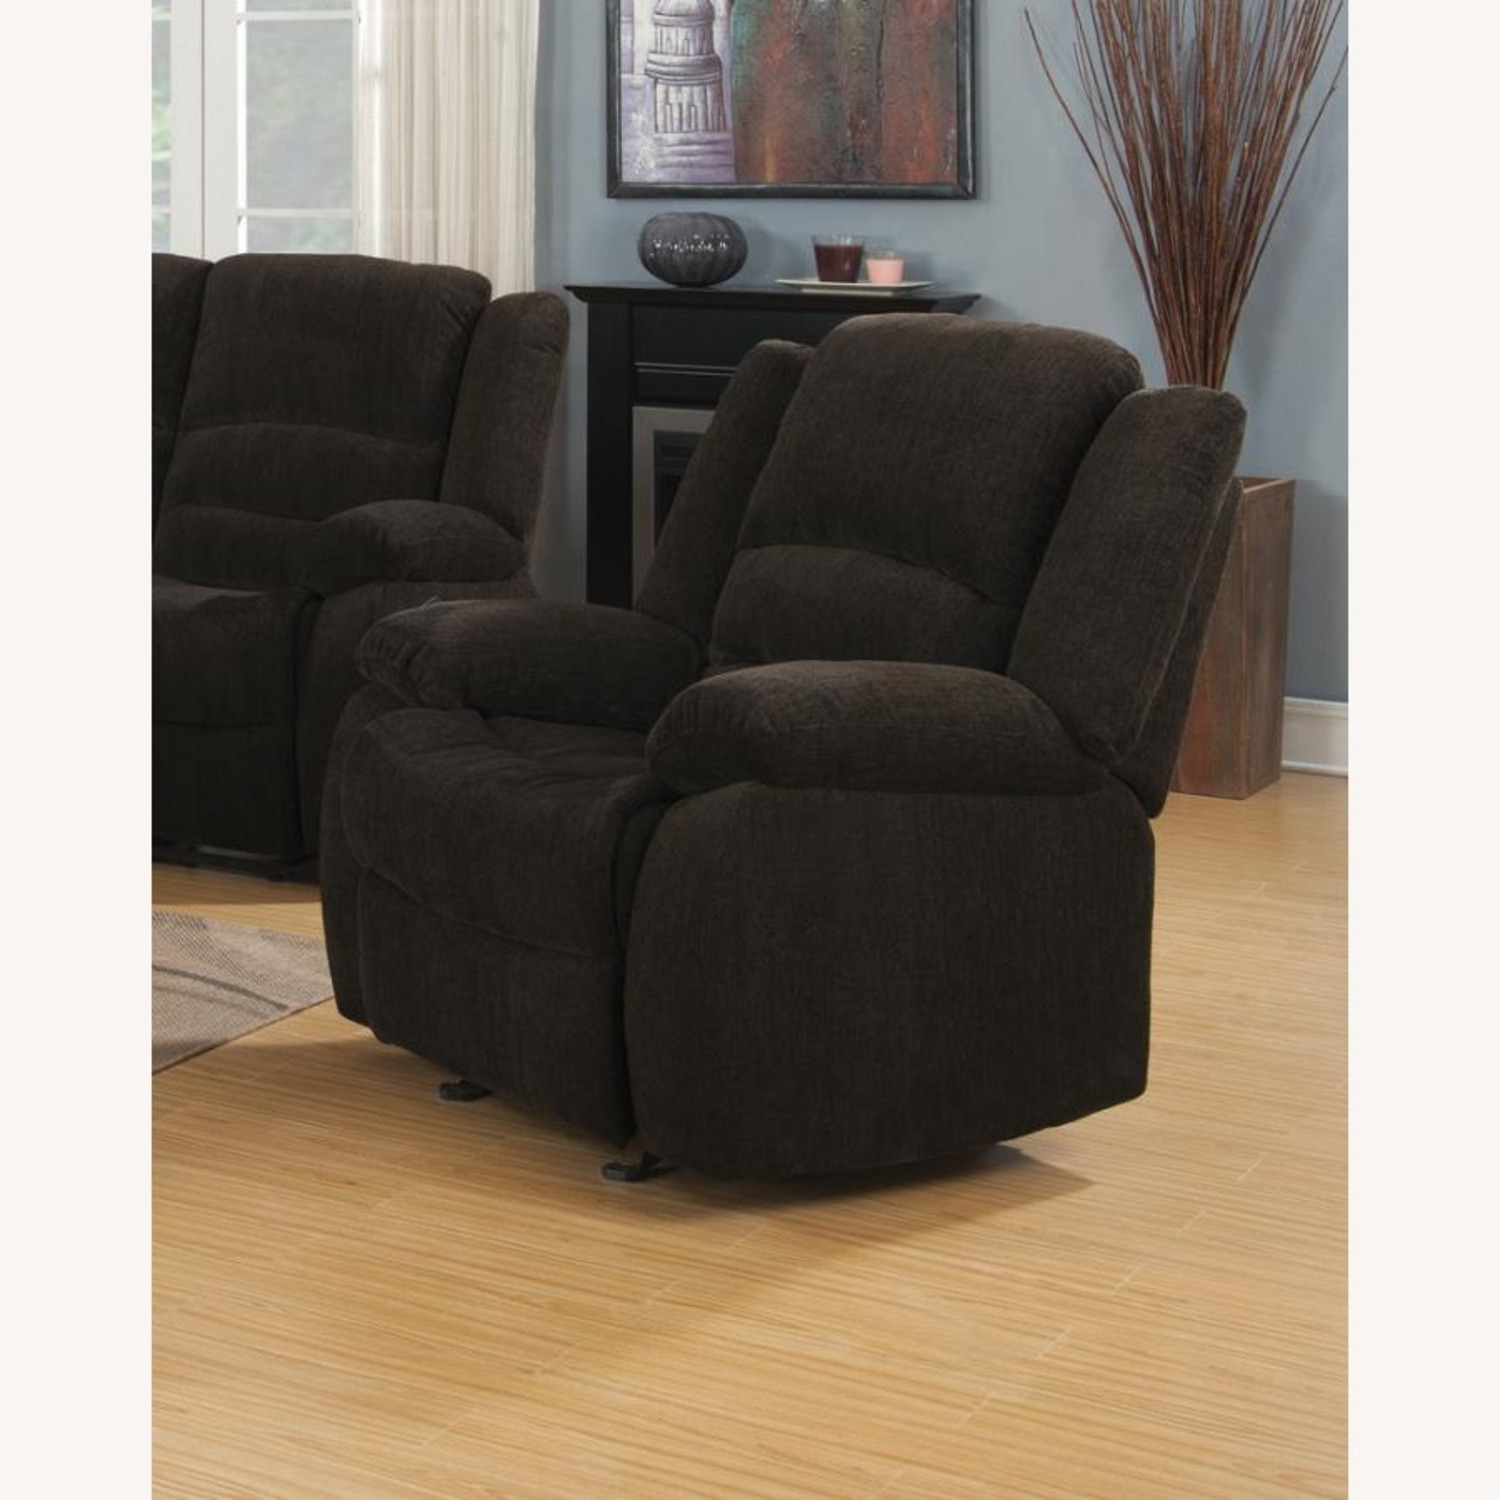 Glider Recliner In Chocolate Chenille Fabric - image-2